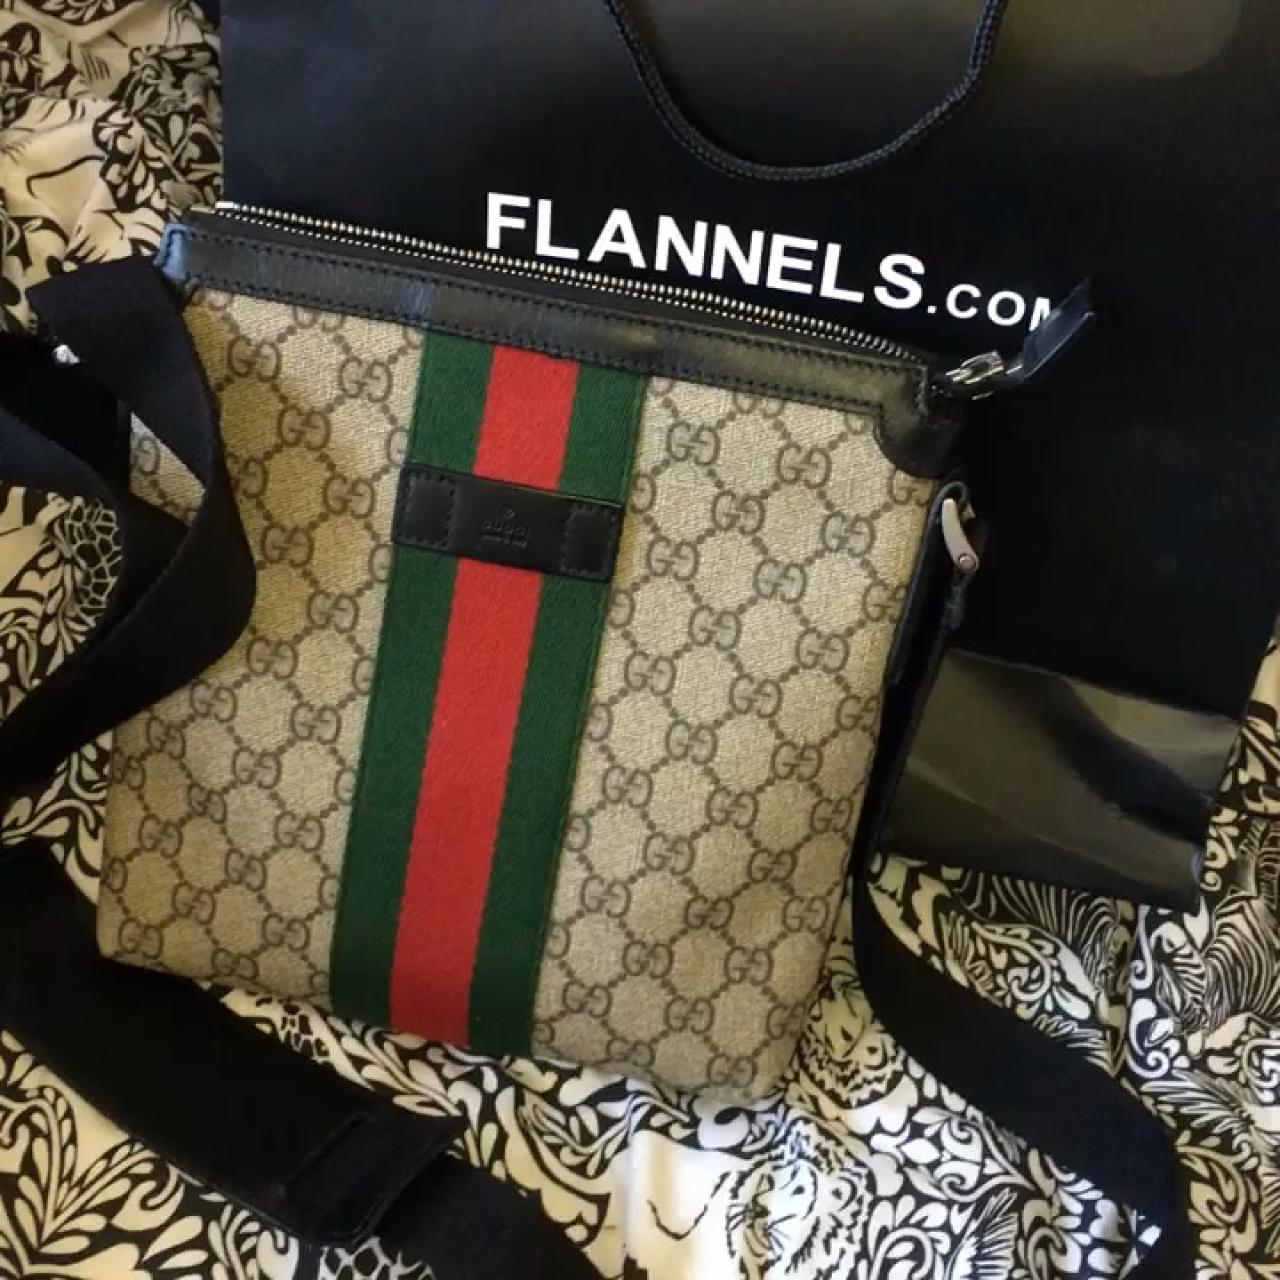 5801f499a Gucci messenger bag Bought from flannels 9/10 Condition - Depop